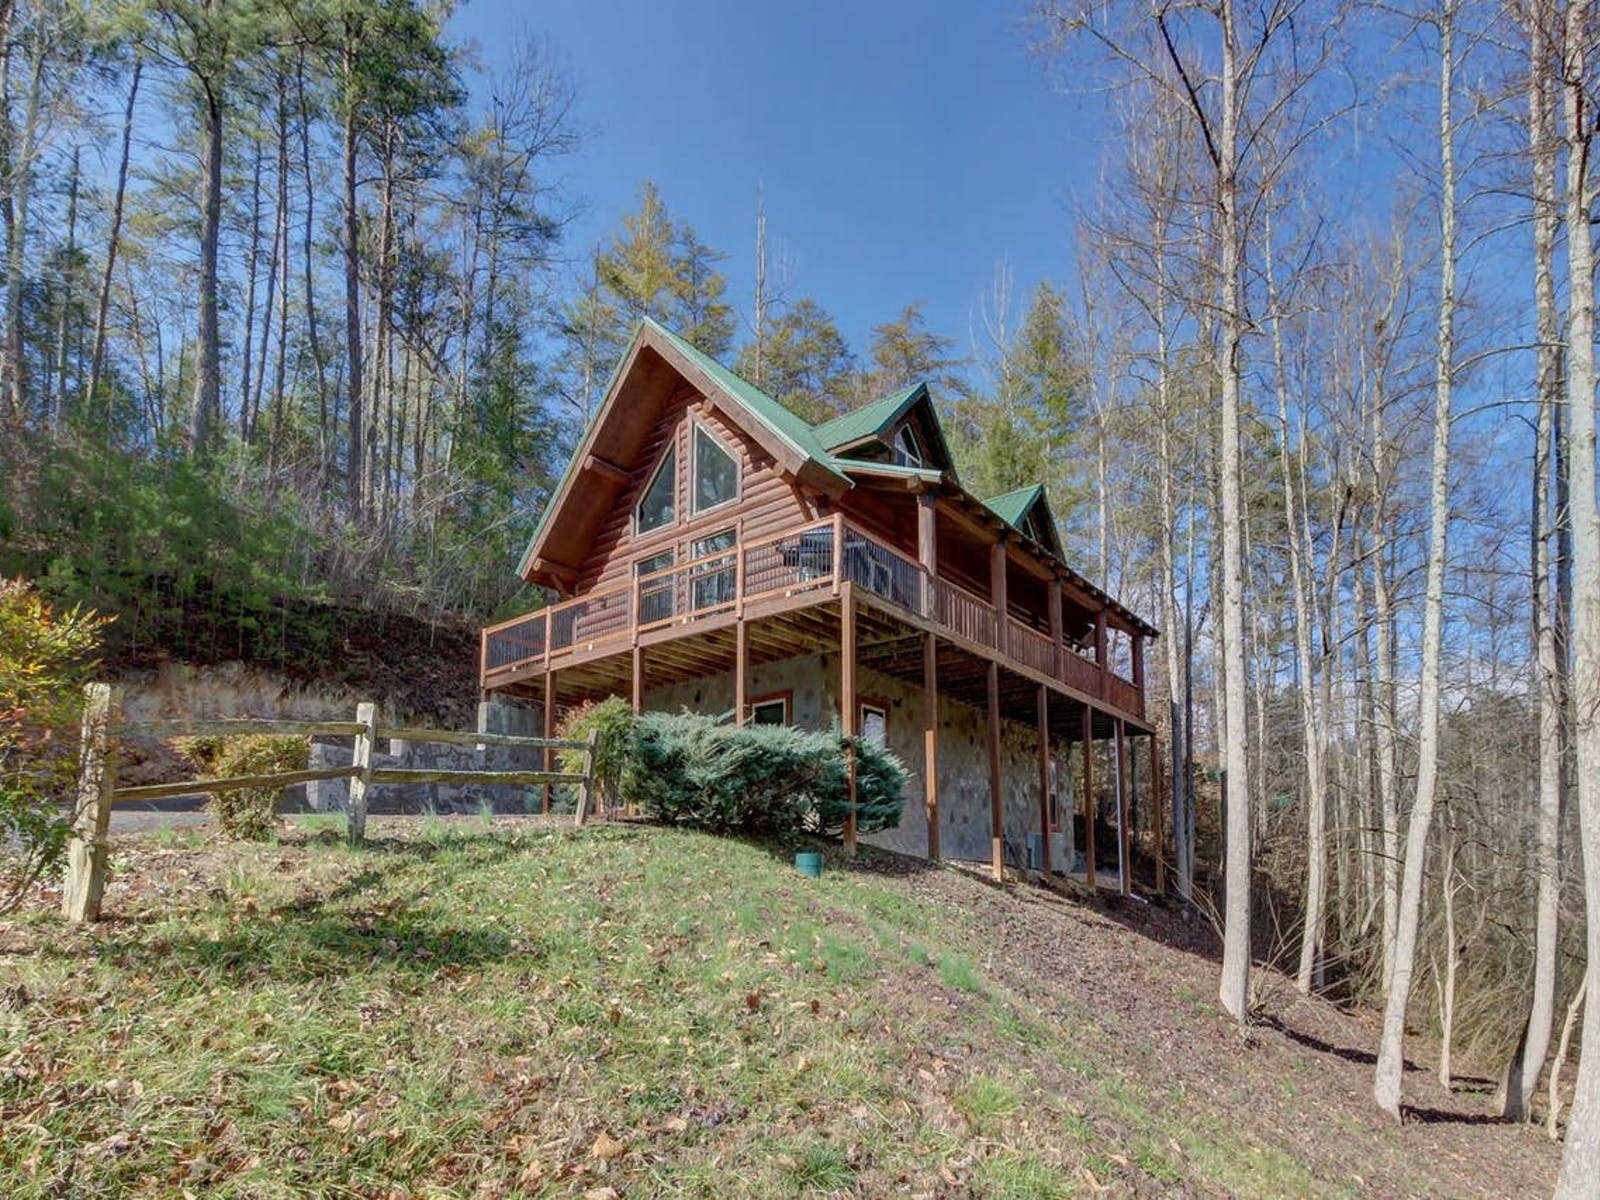 Pet-friendly vacation cabin in the Smoky Mountains